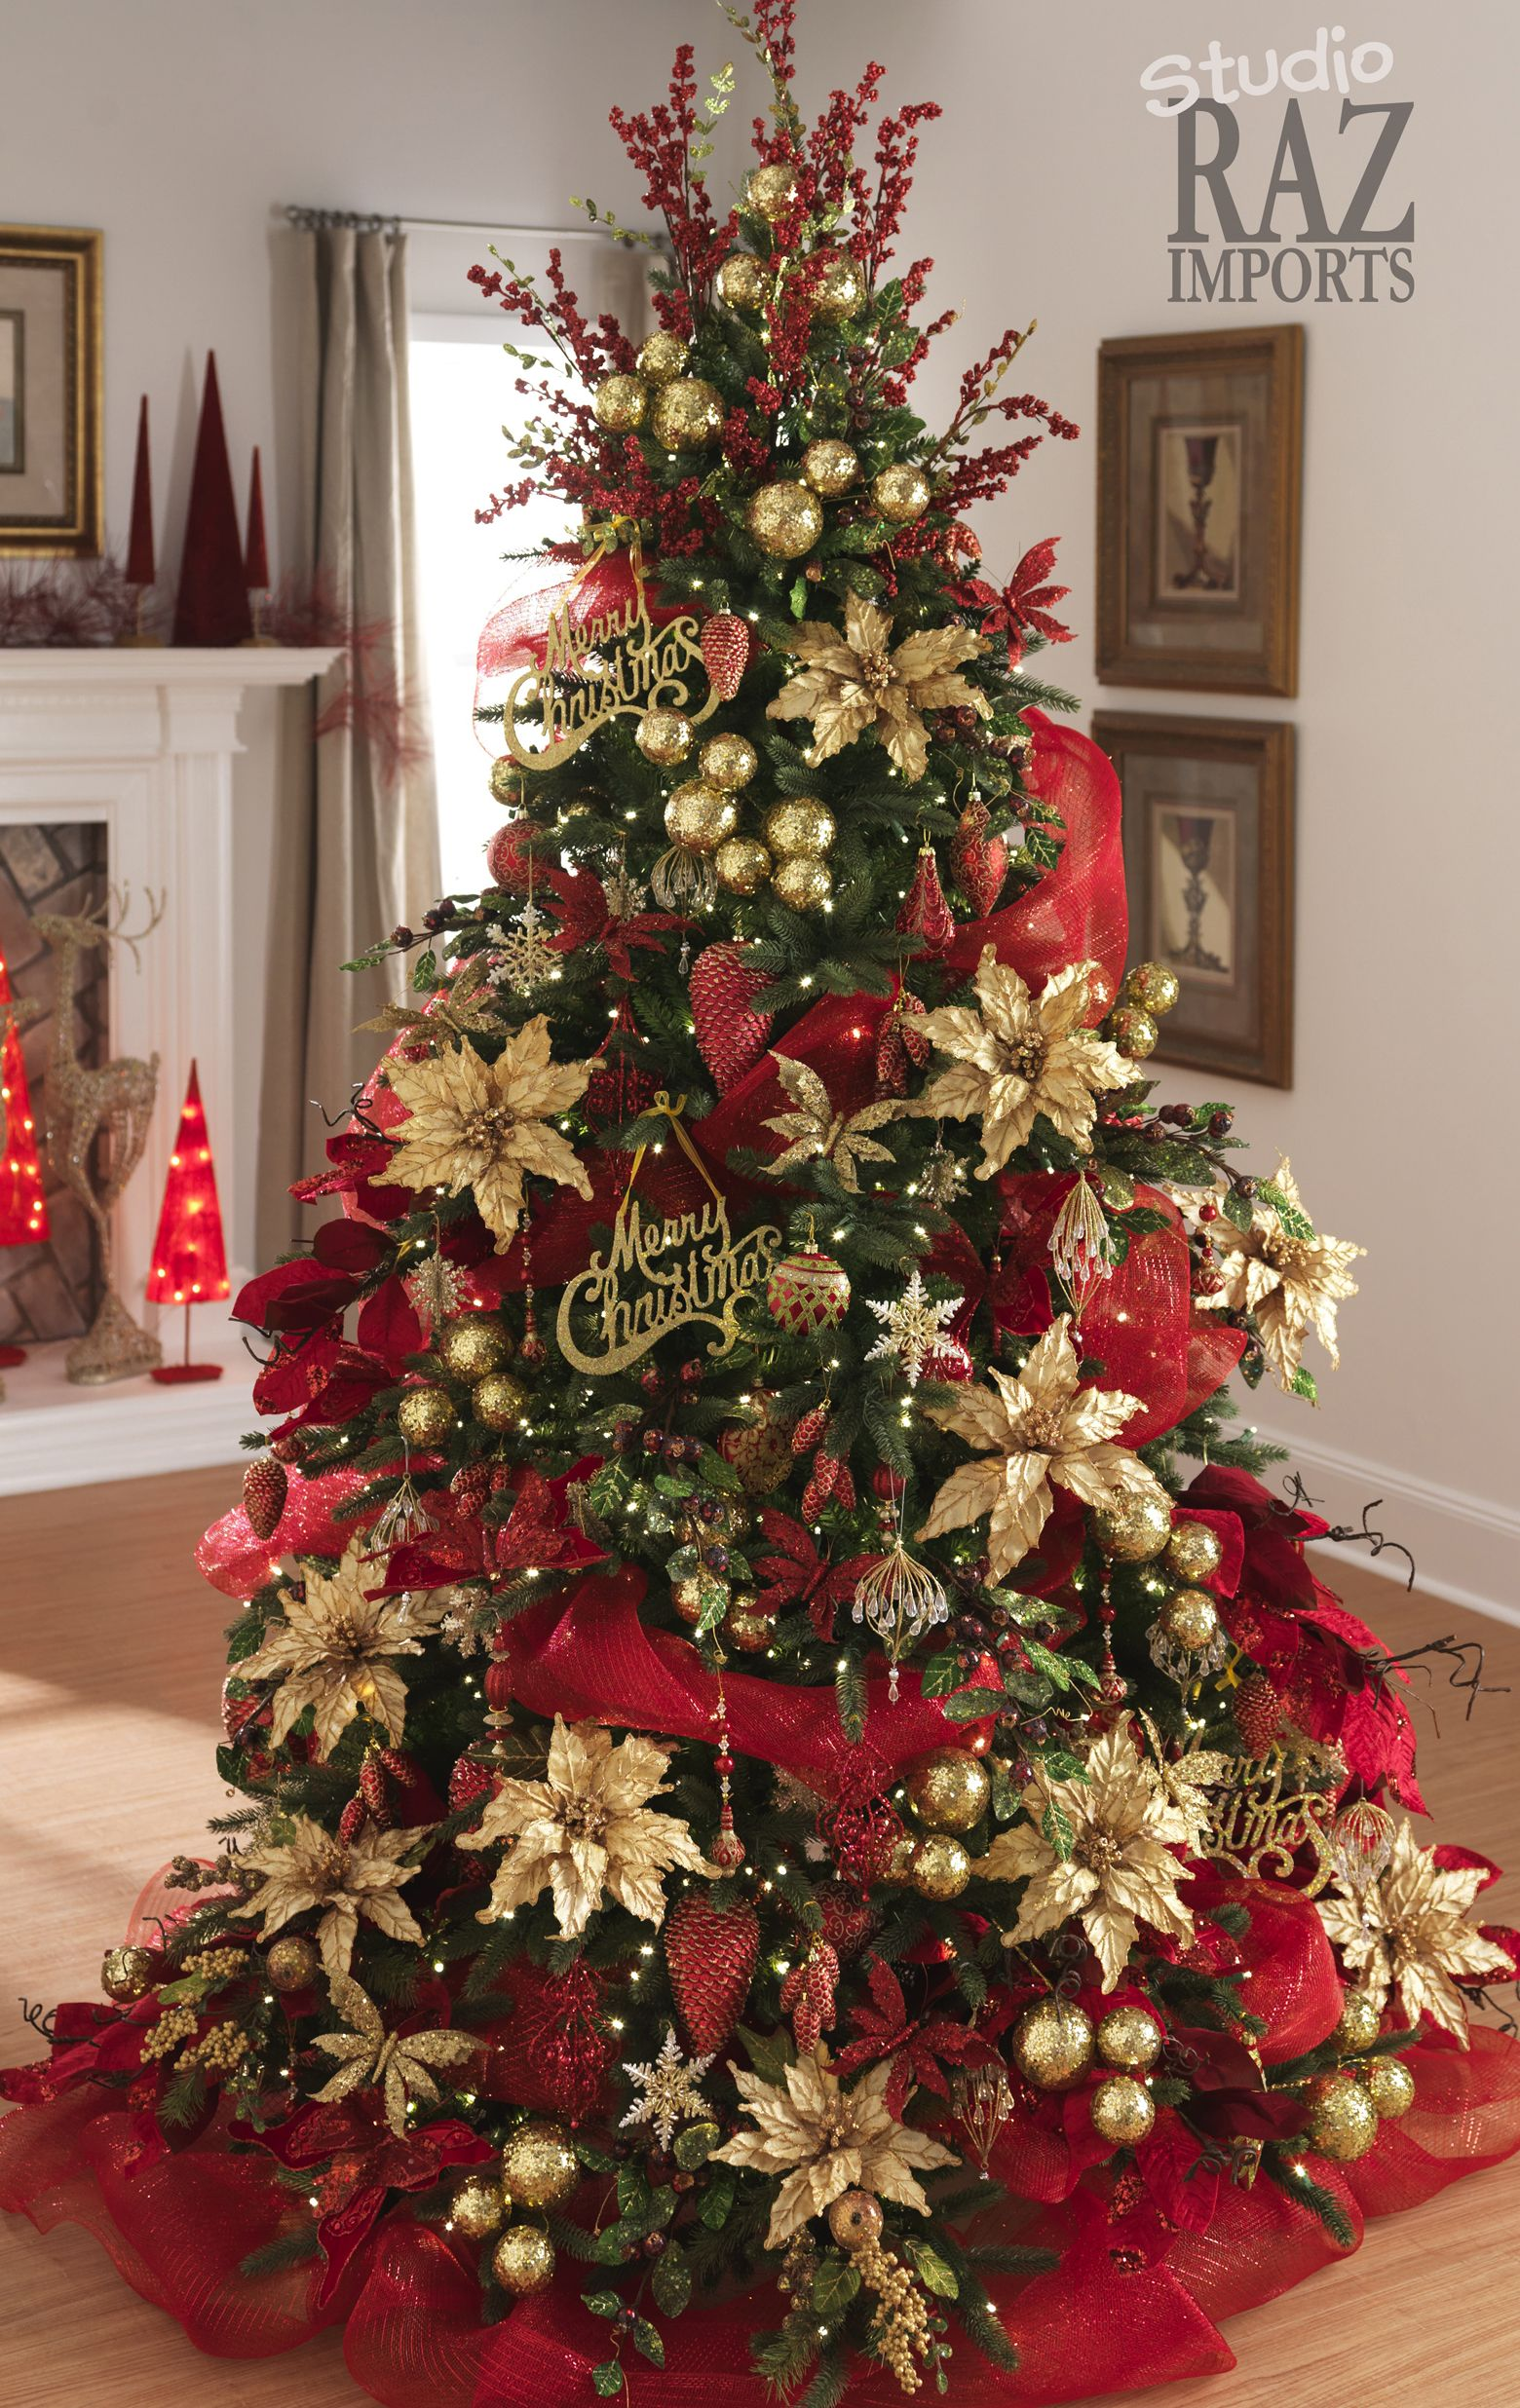 25 traditional red and green christmas decor ideas christmas trees pinterest christmas christmas decorations and christmas tree decorations - Order Of Decorating A Christmas Tree